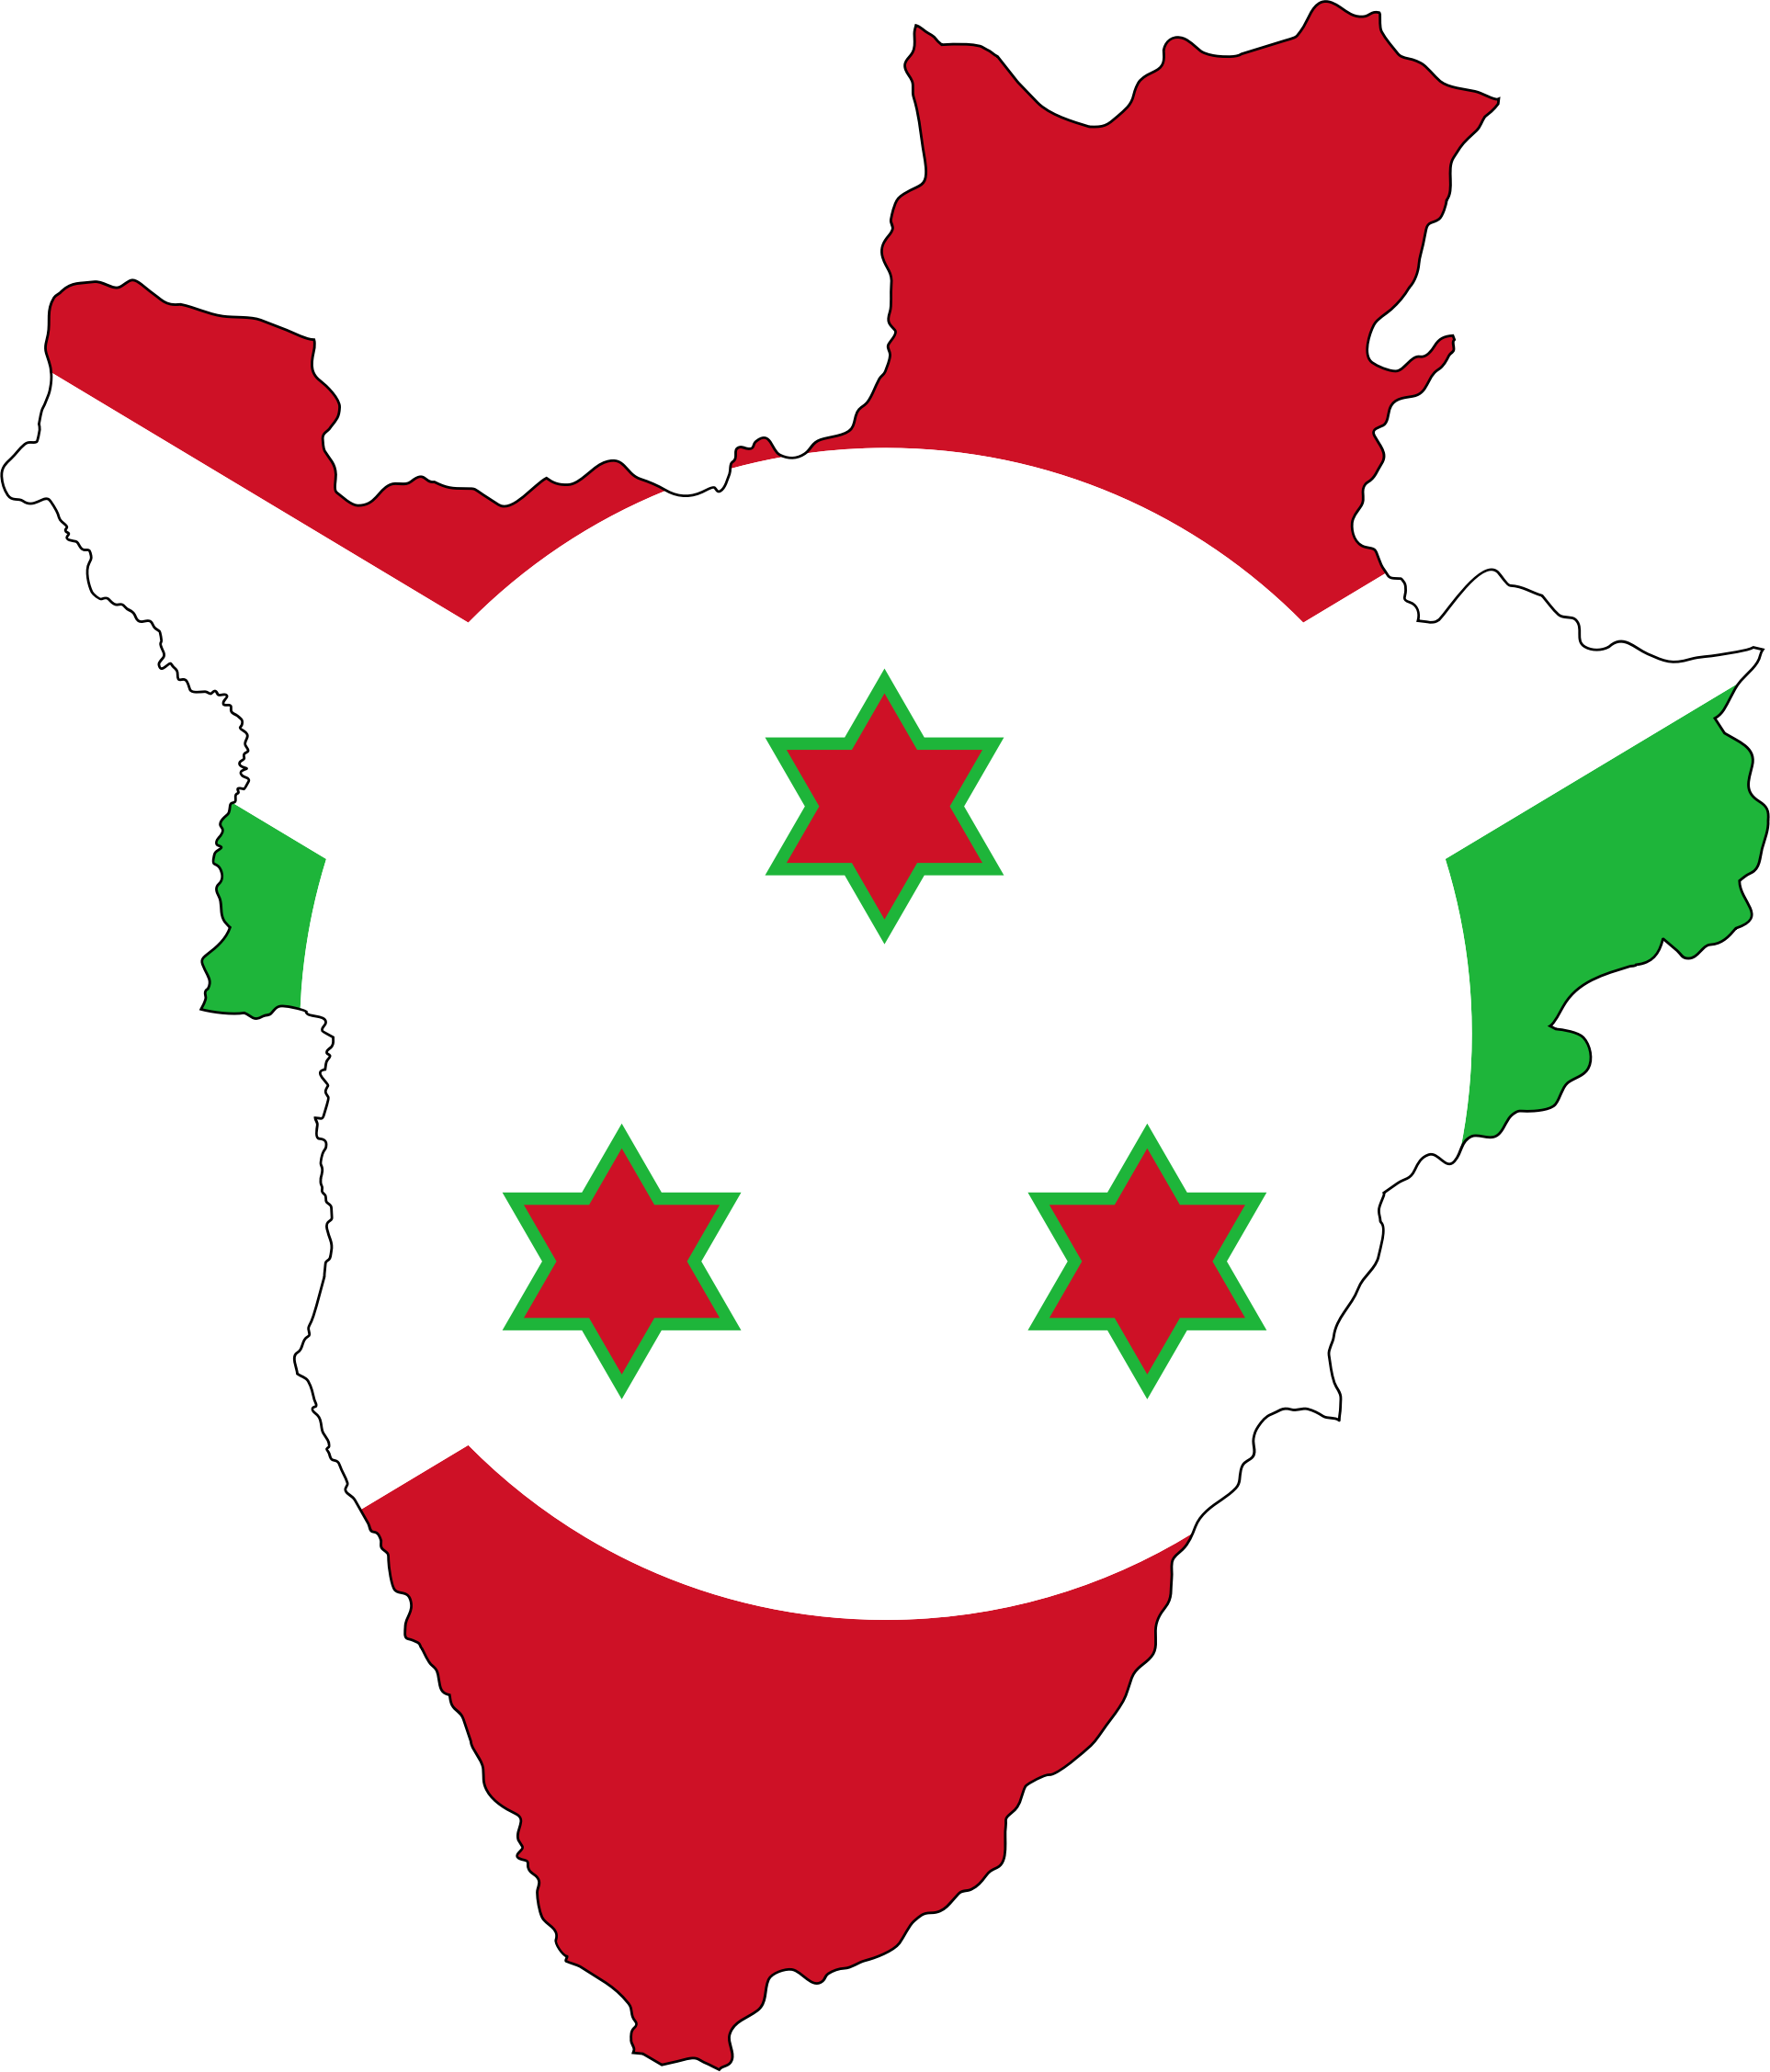 Burundi Flag Map With Stroke by GDJ